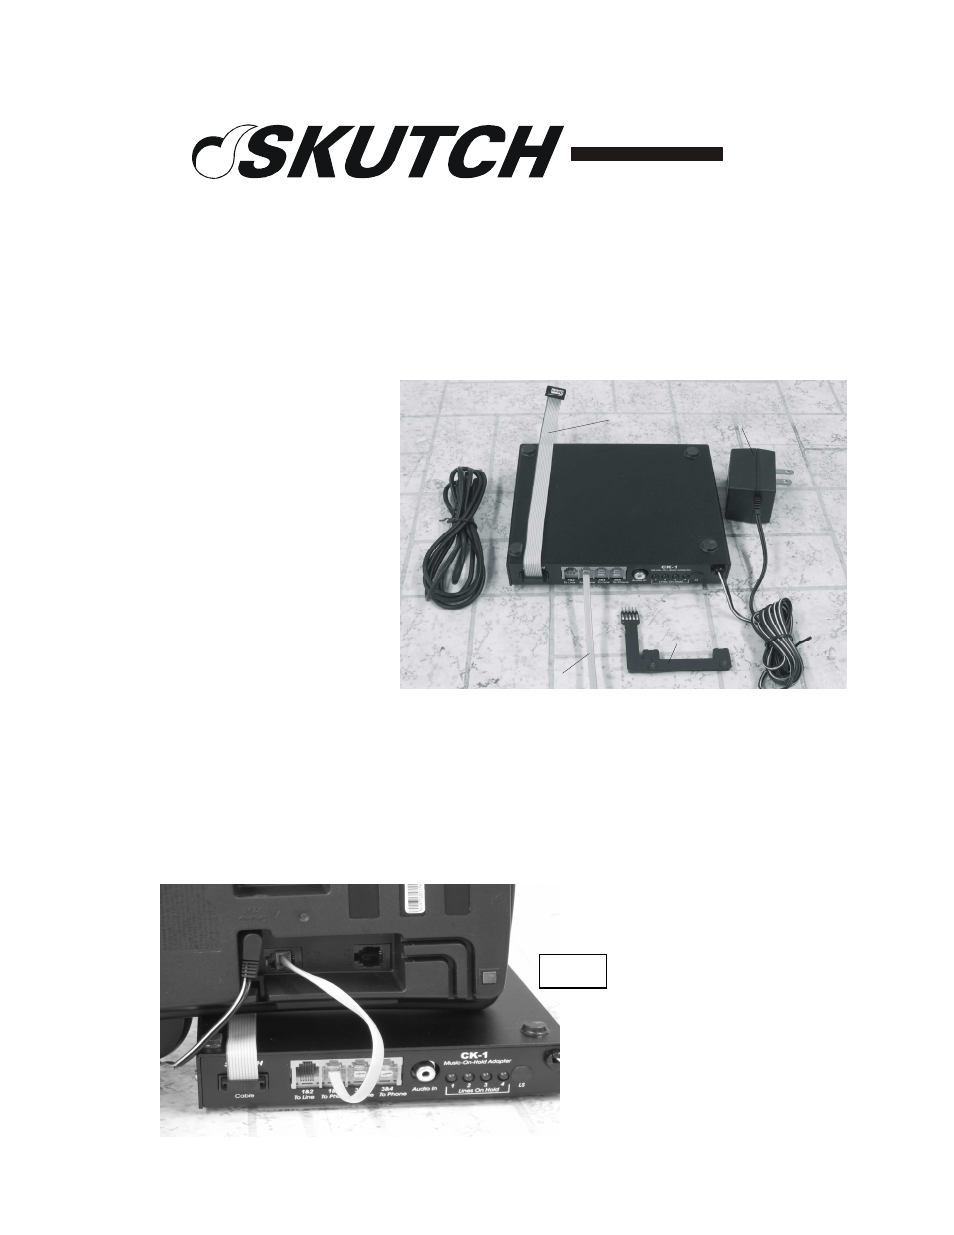 skutch electronics ck 1a user manual 5 pages also for ck 1a2 rh manualsdir com at&t phone model 2462 manual at&t phone 2462 manual